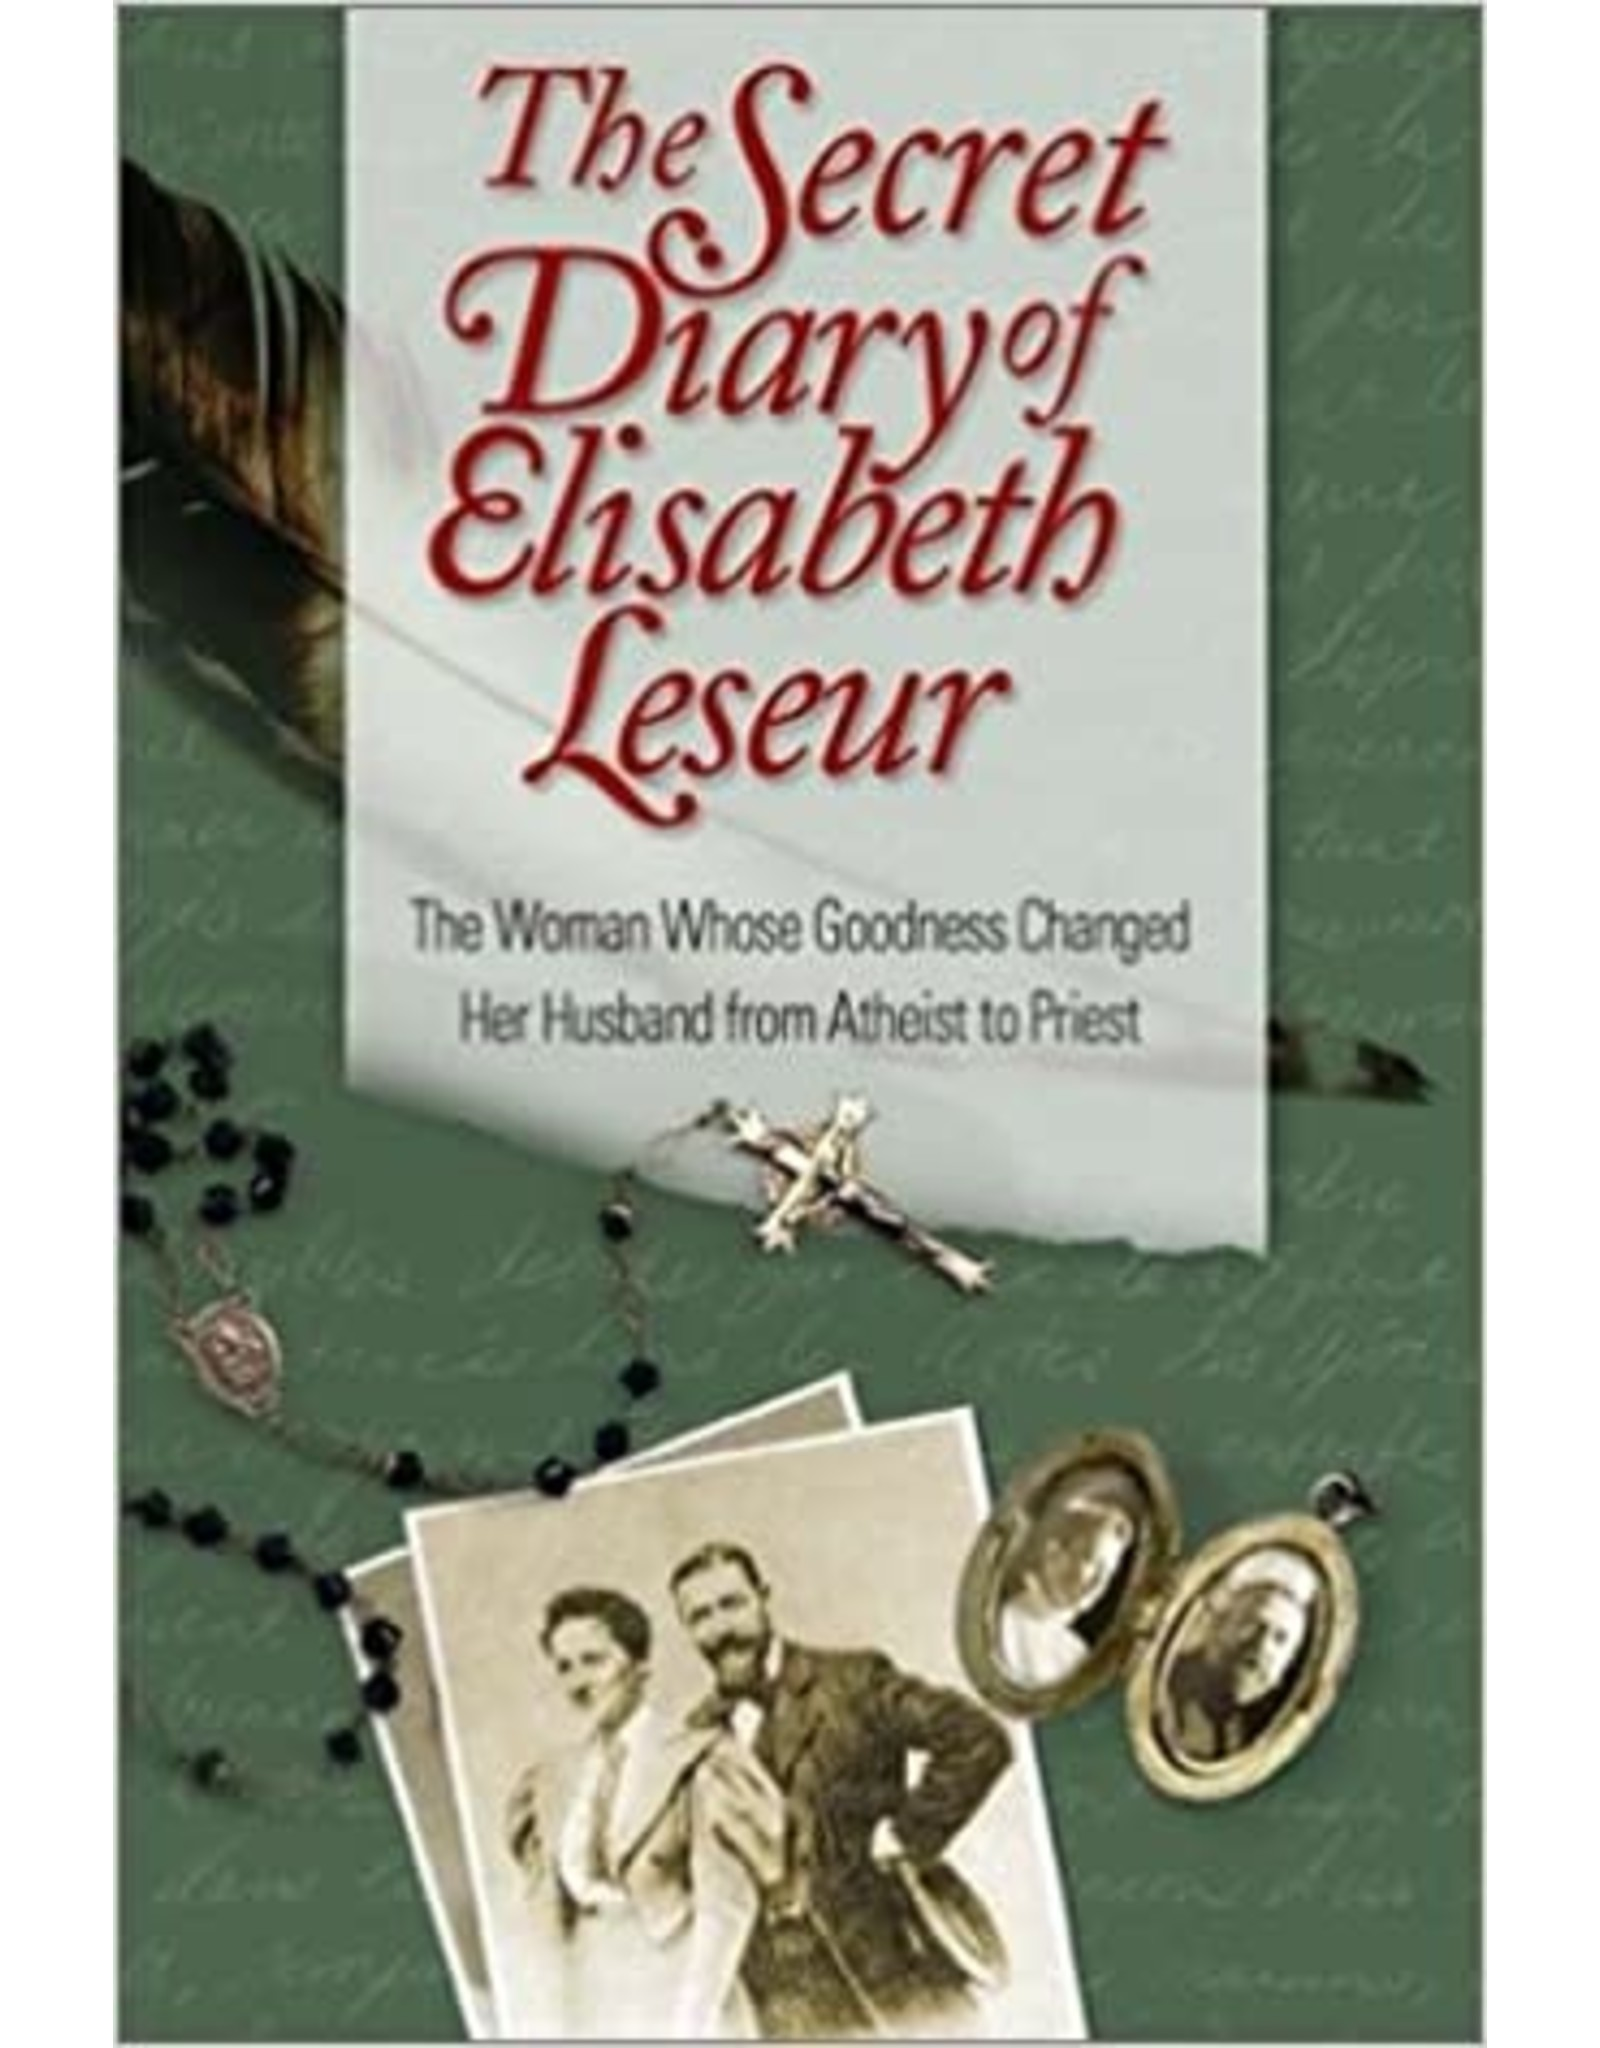 Lesuer, Elisabeth Secret Diary of Elisabeth Leseur: The Woman Whose Goodness Changed Her Husband from Atheist to Priest